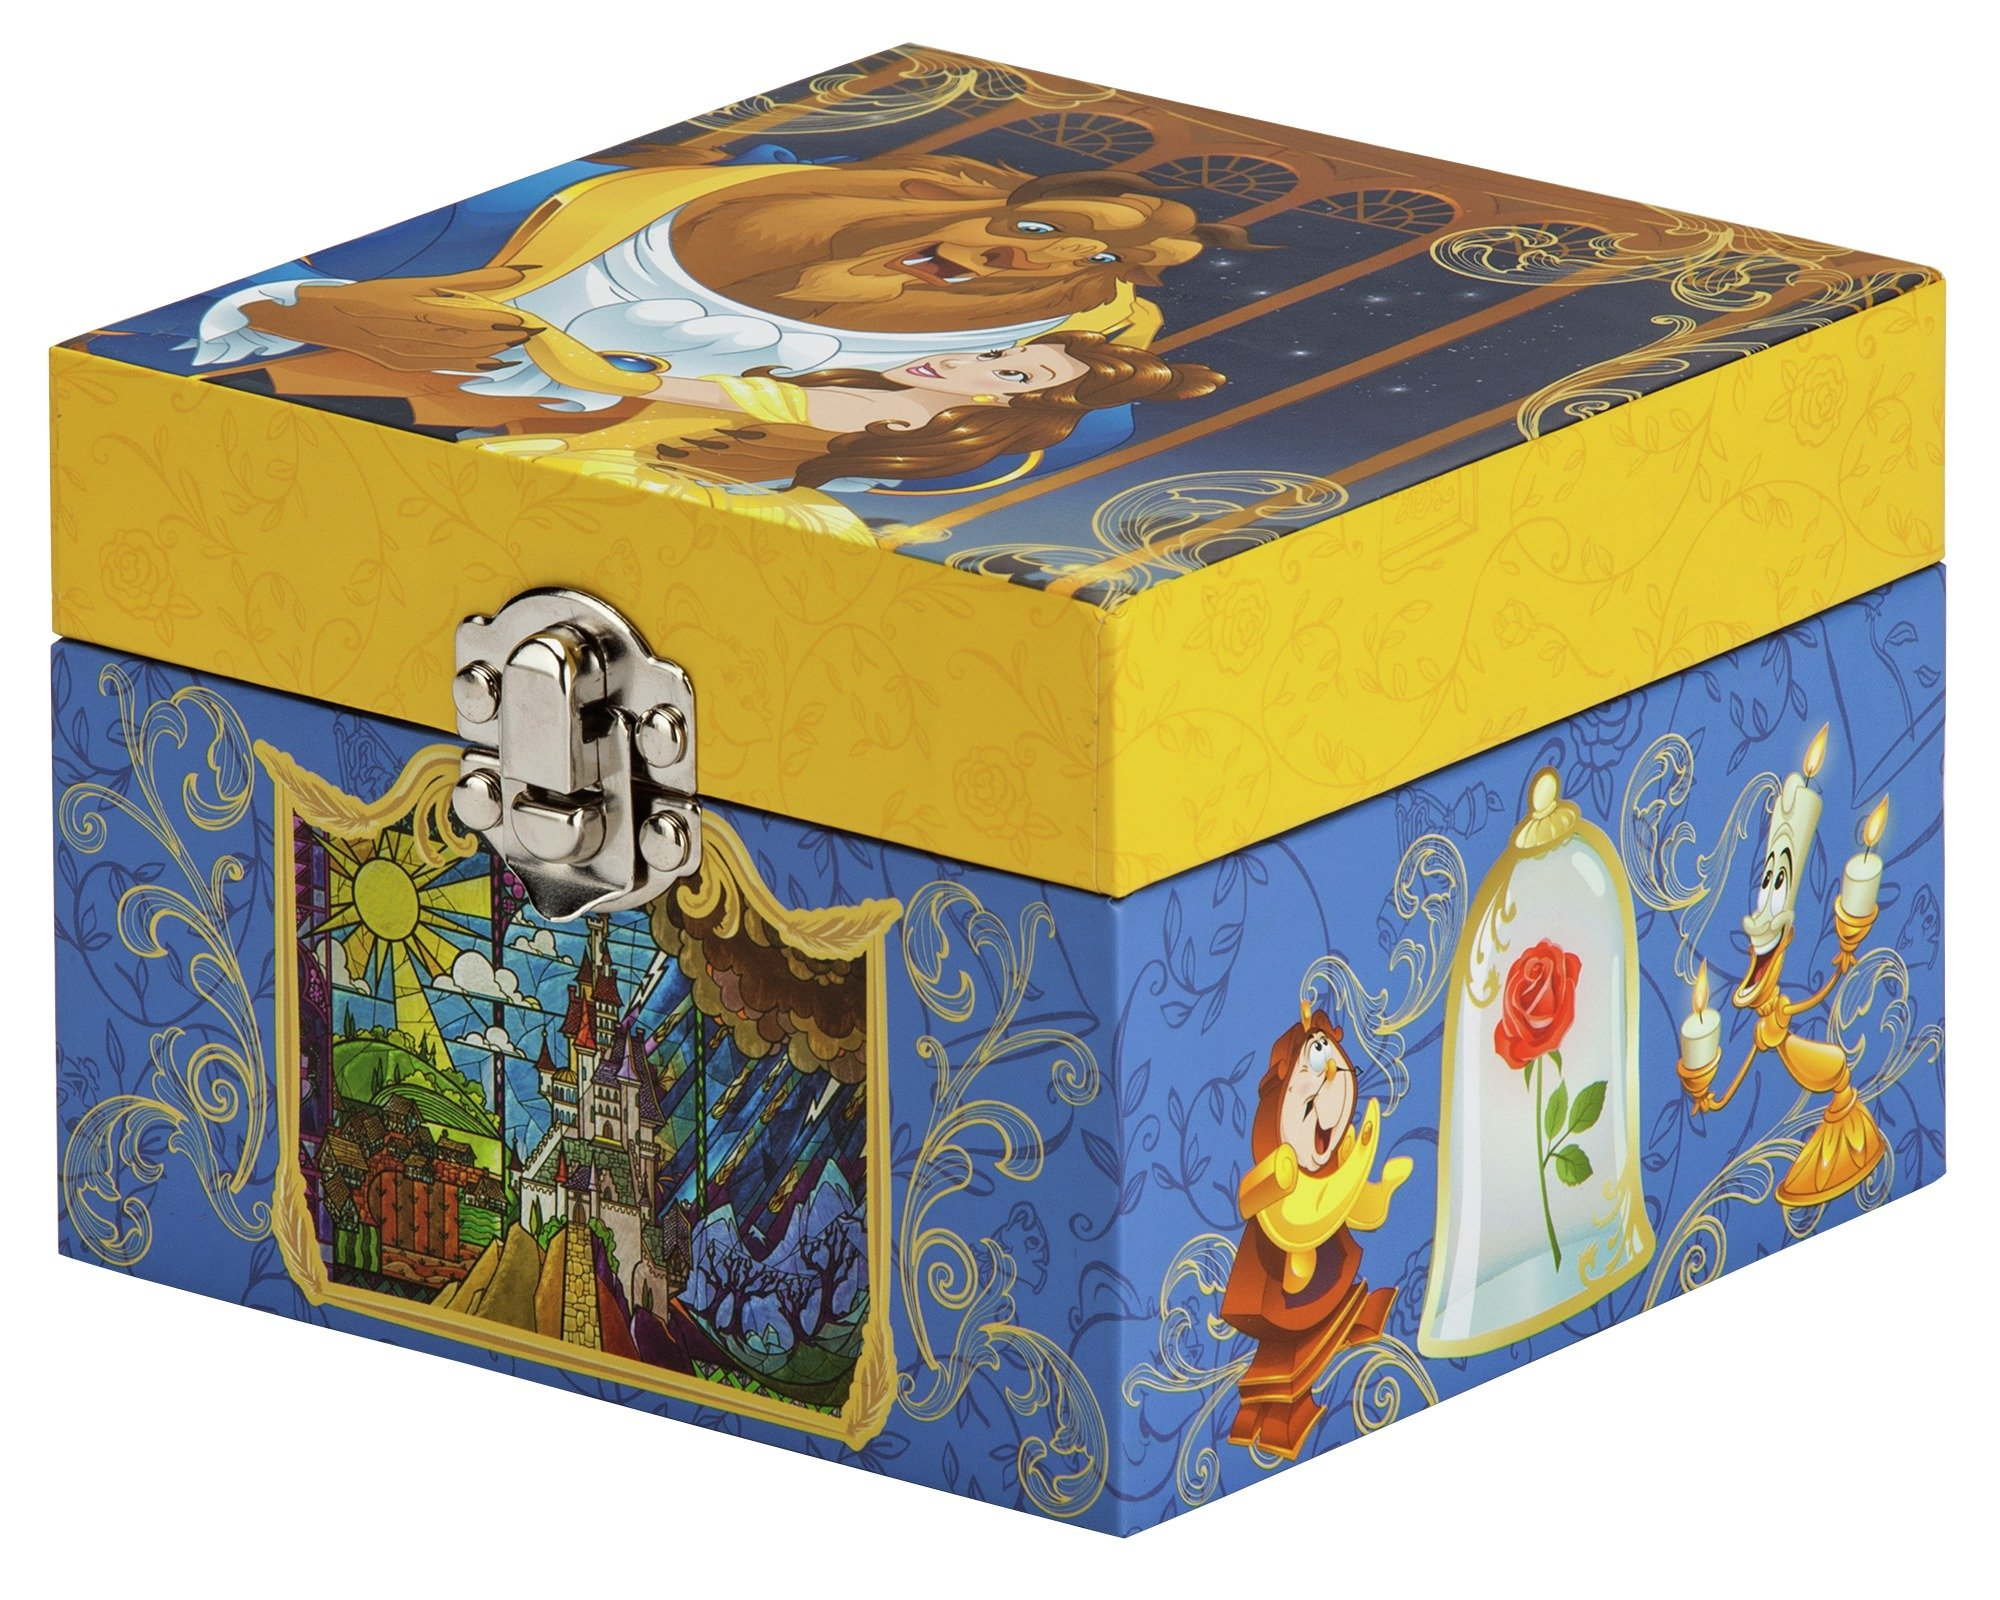 Buy Disney Beauty and the Beast Musical Jewellery Box Jewellery